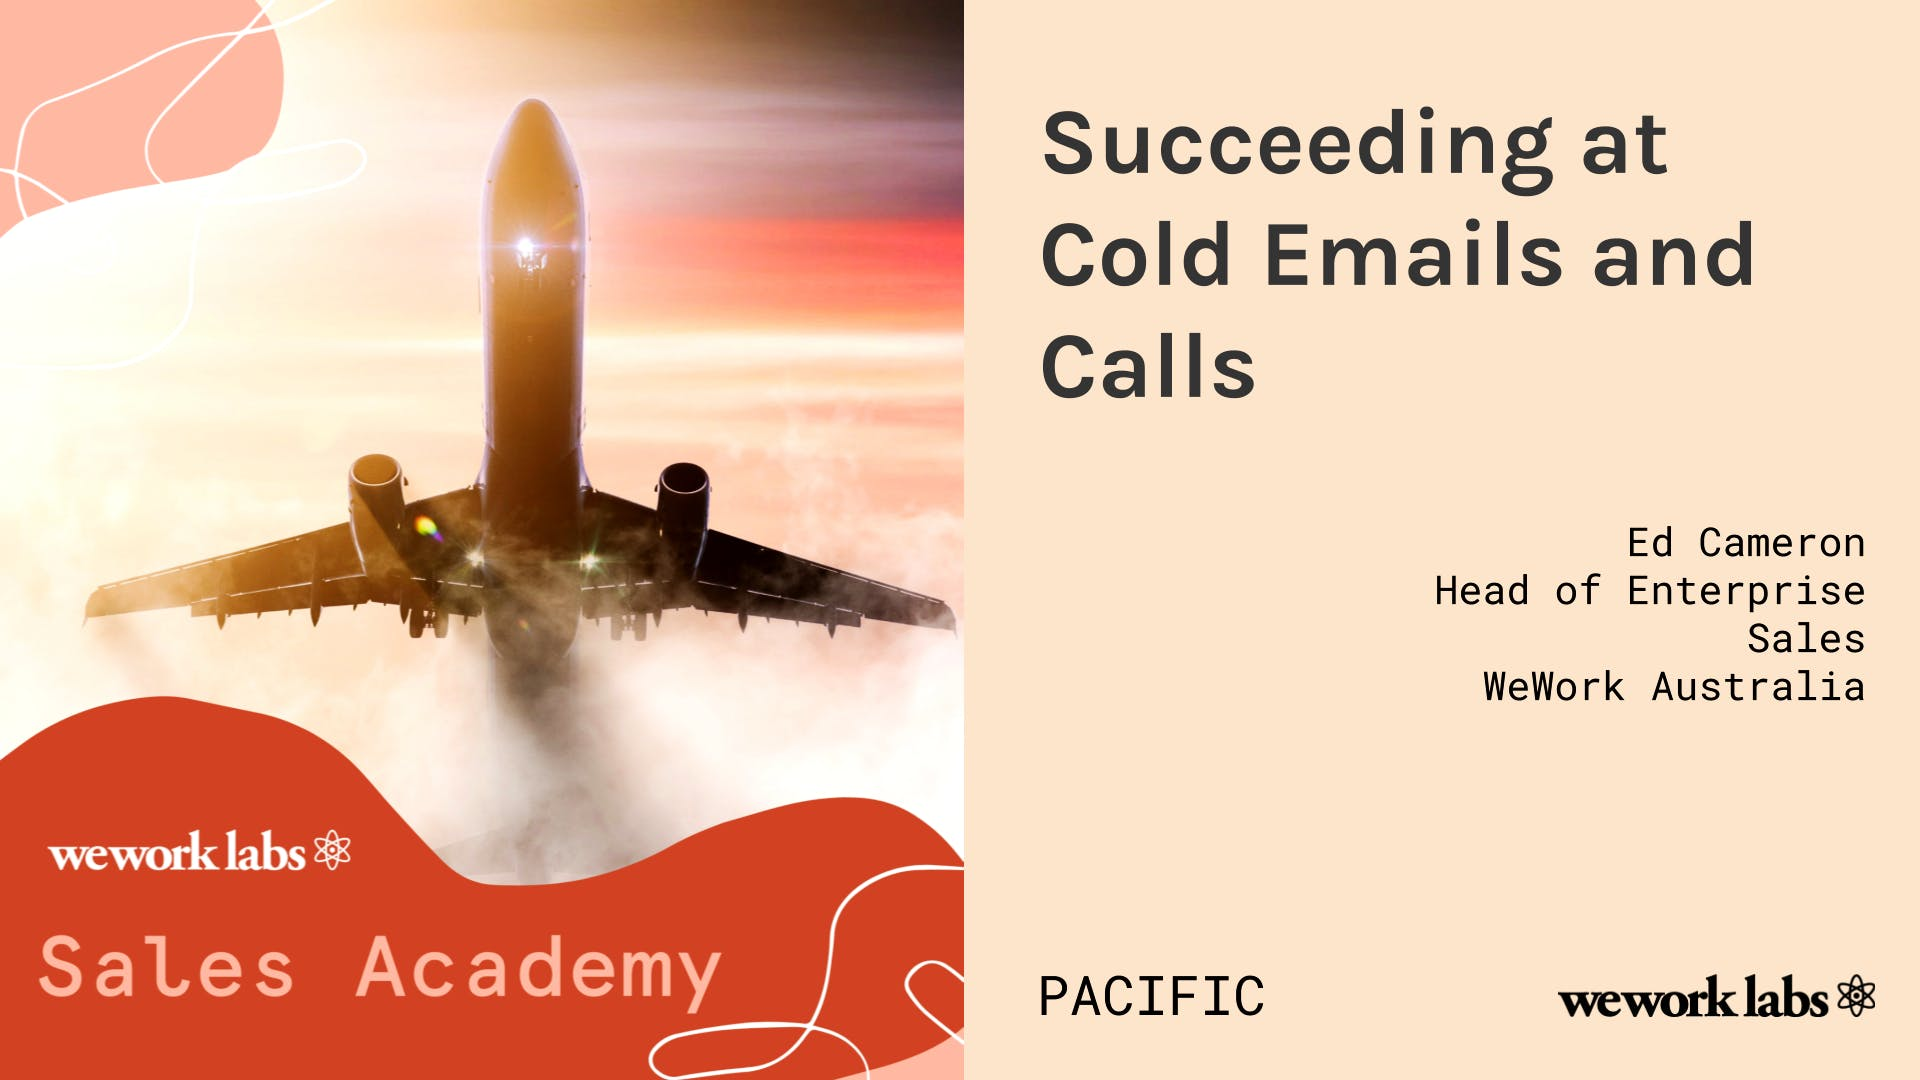 Sales Academy (Pacific): Succeeding at Cold Emails and Cold Calls